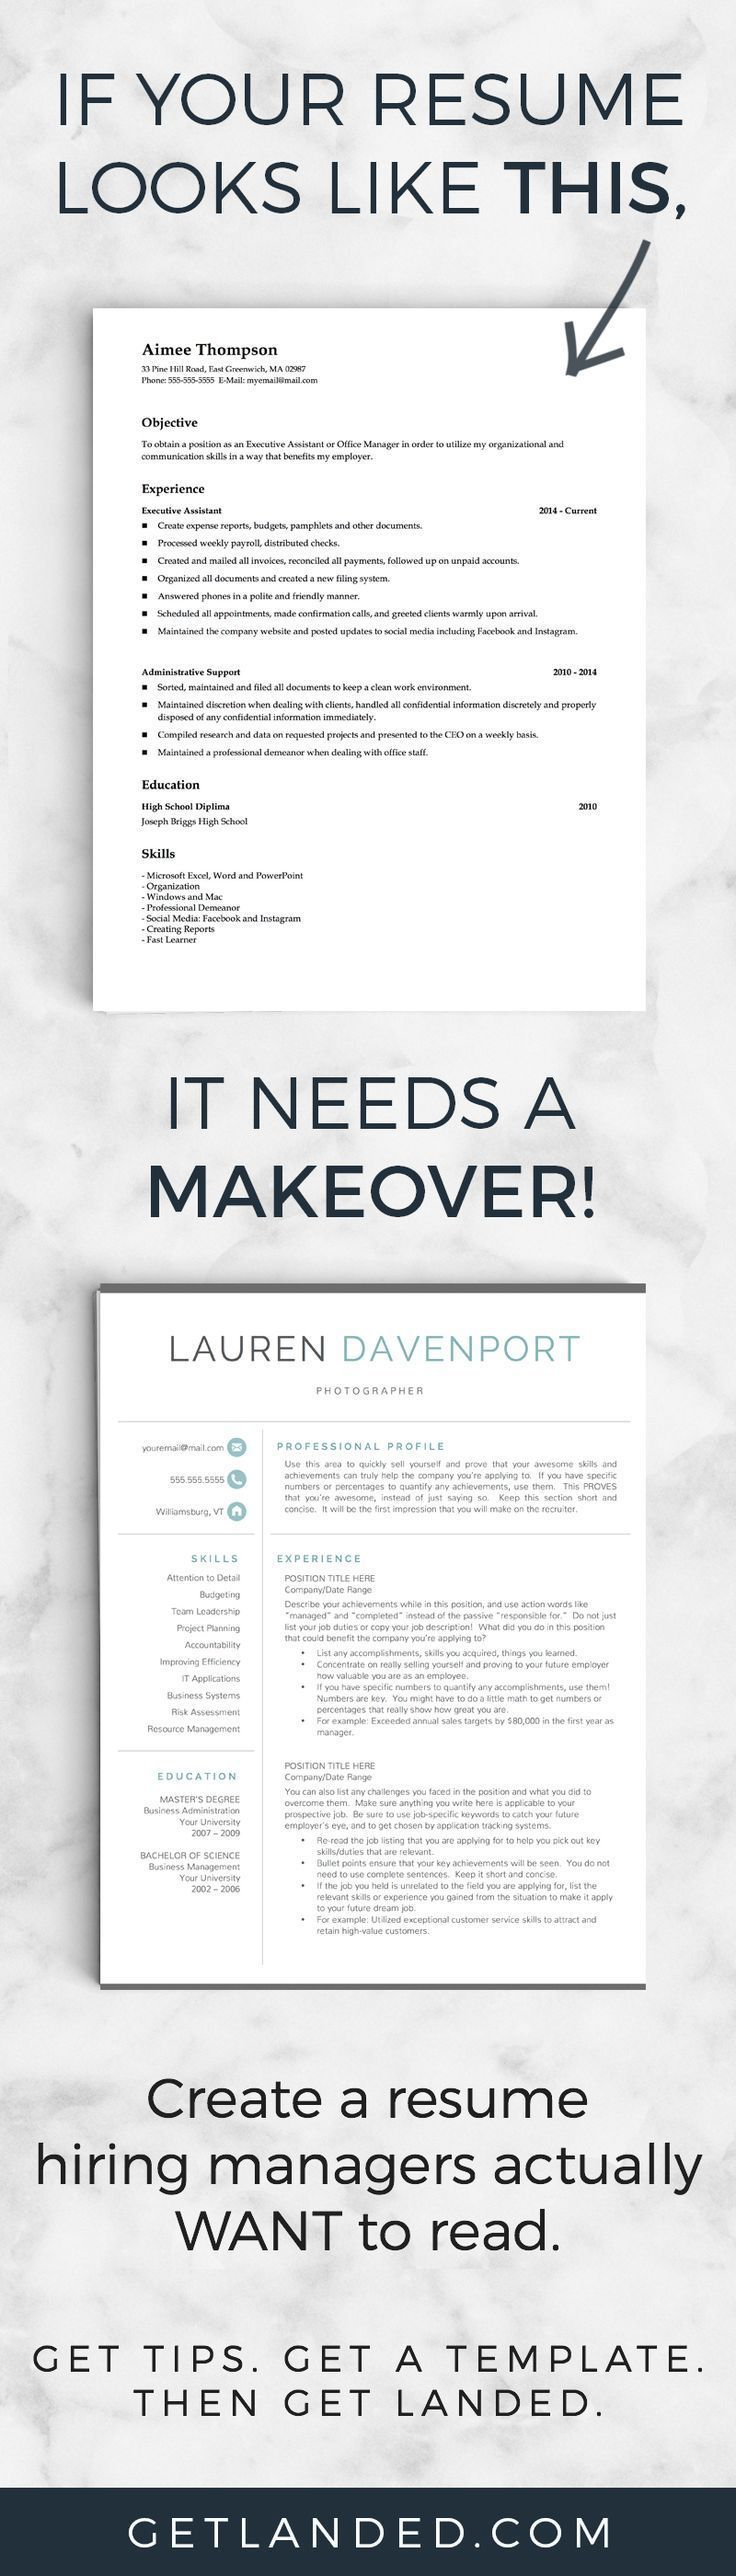 best ideas about resume writing resume resume of candidates desperately need a resume makeover get a resume makeover today a resume template and resume writing tips that will transform your resume